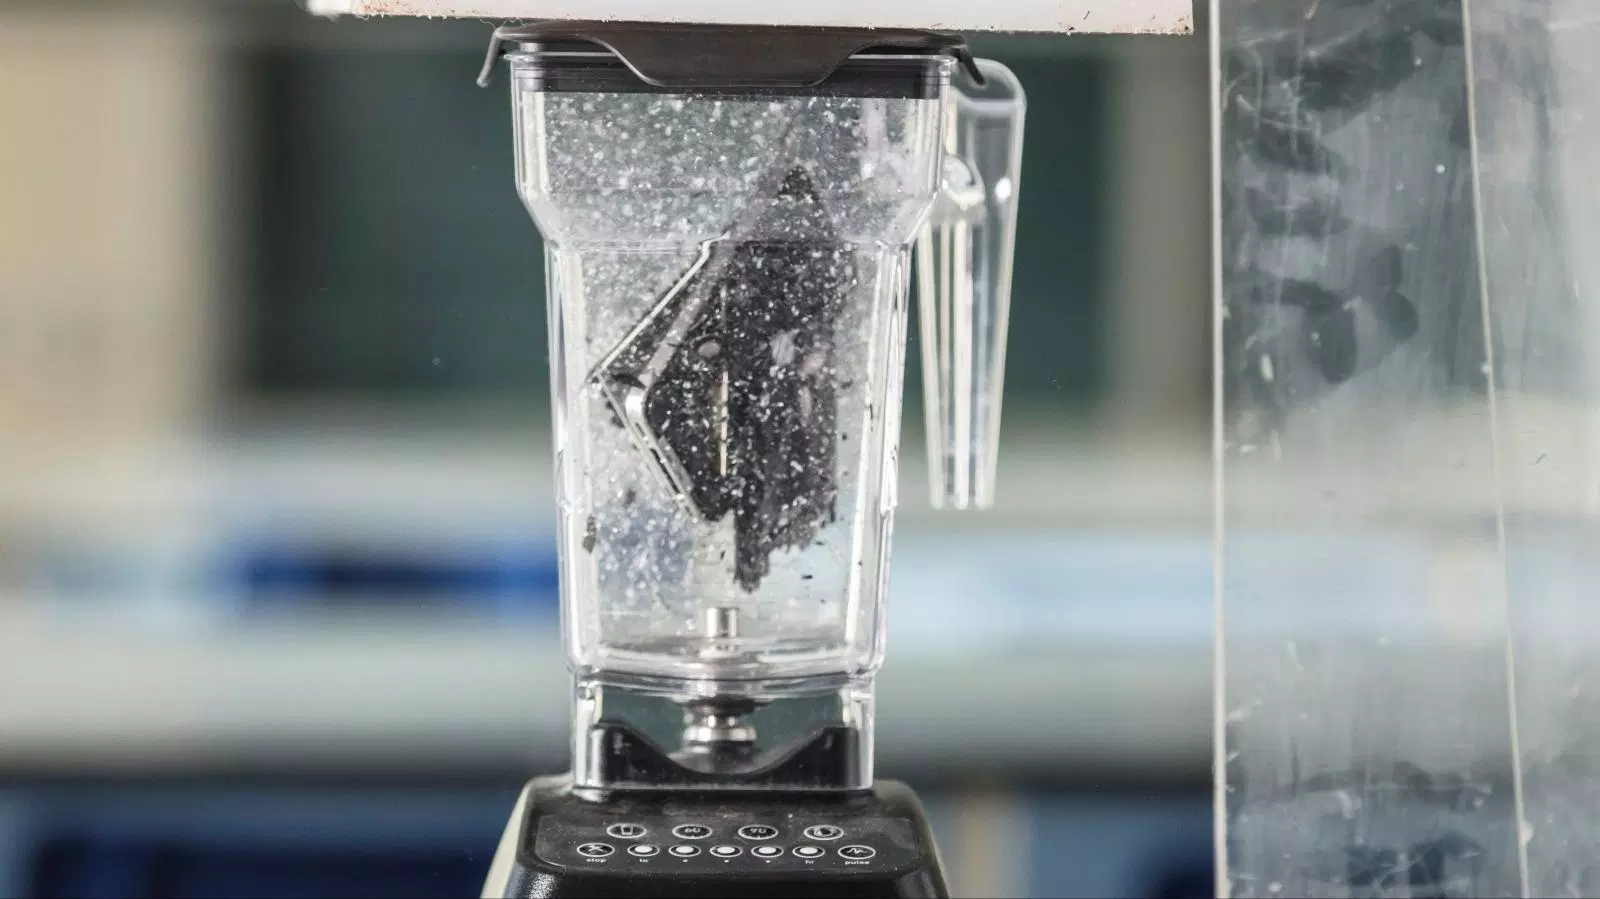 Scientists Put an iPhone in a Blender to Find out what Mobile Phones are Really Made of